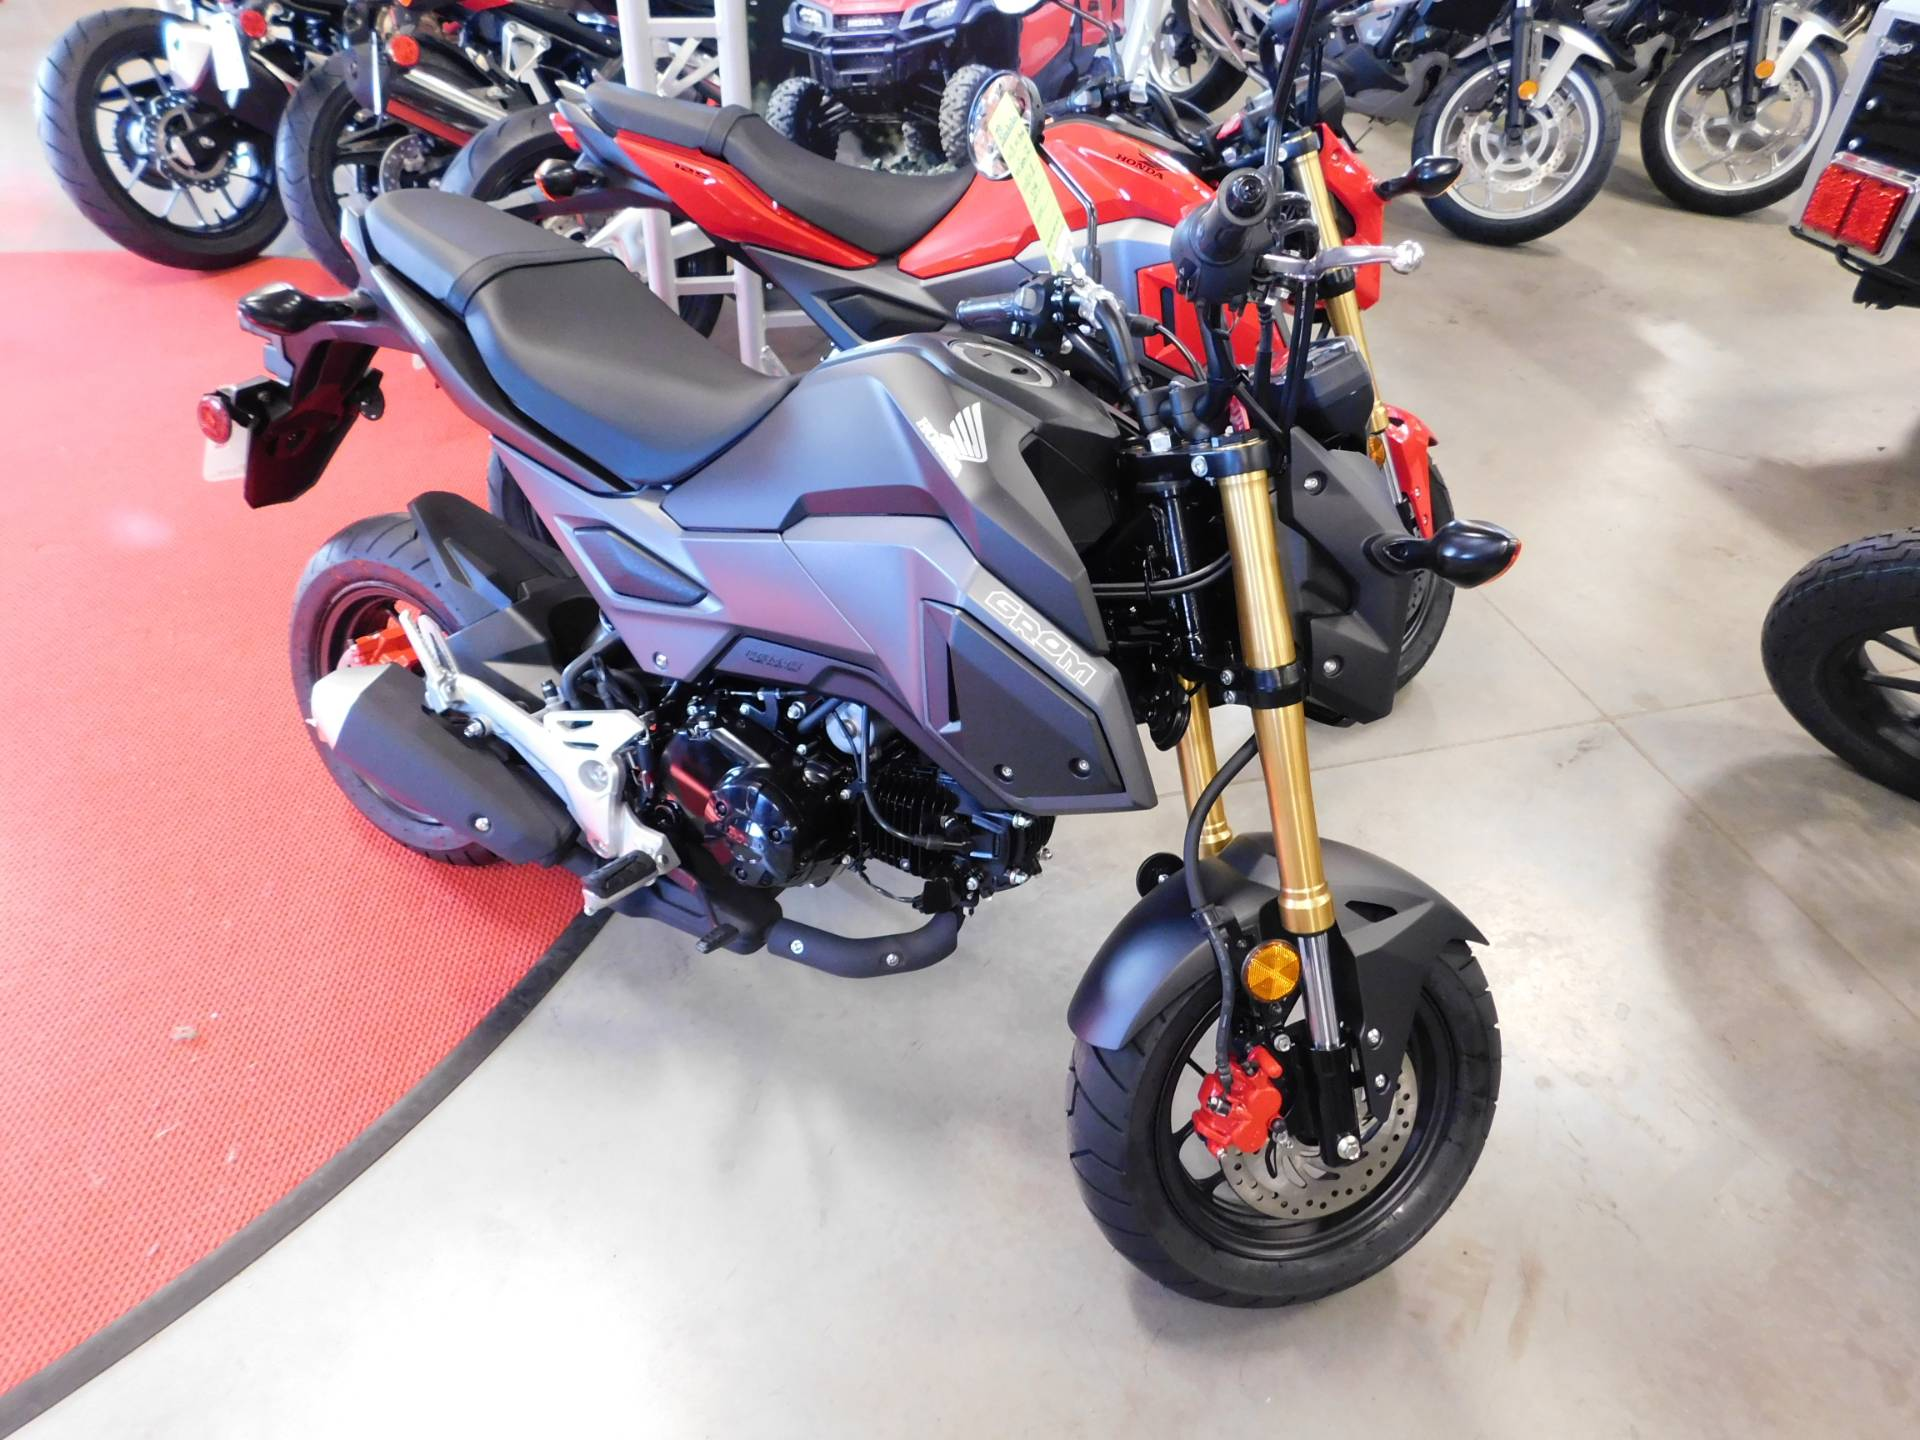 New 2018 Honda Grom Motorcycles in Sauk Rapids MN